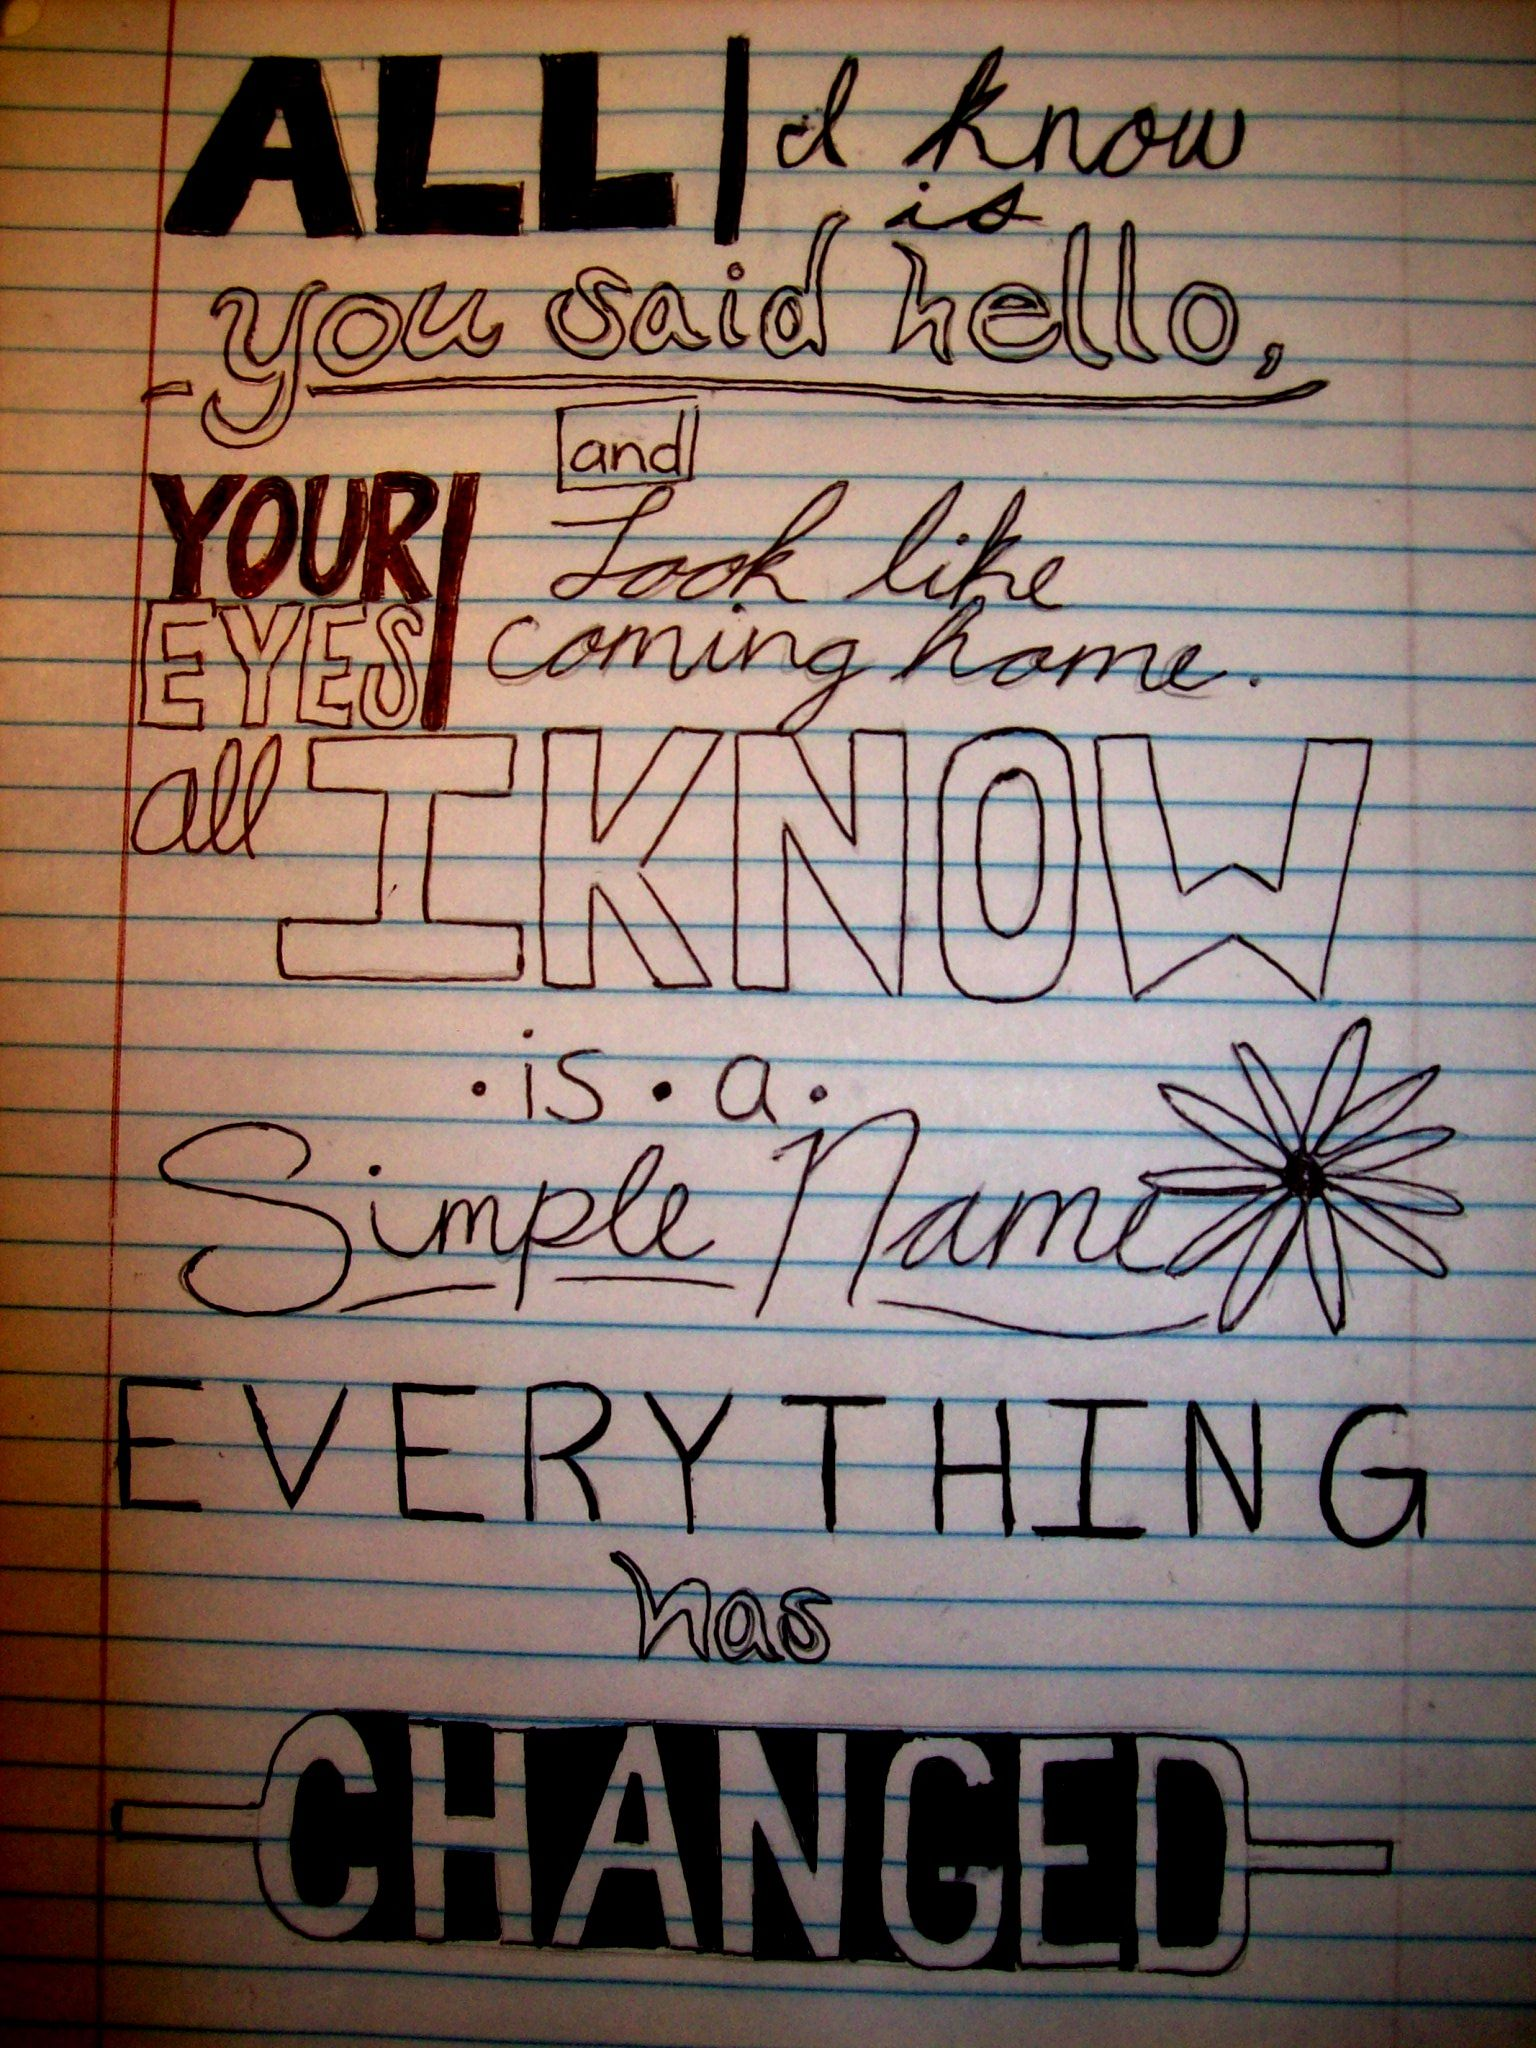 My doodles from philosophy, in the wise words of Taylor Swift